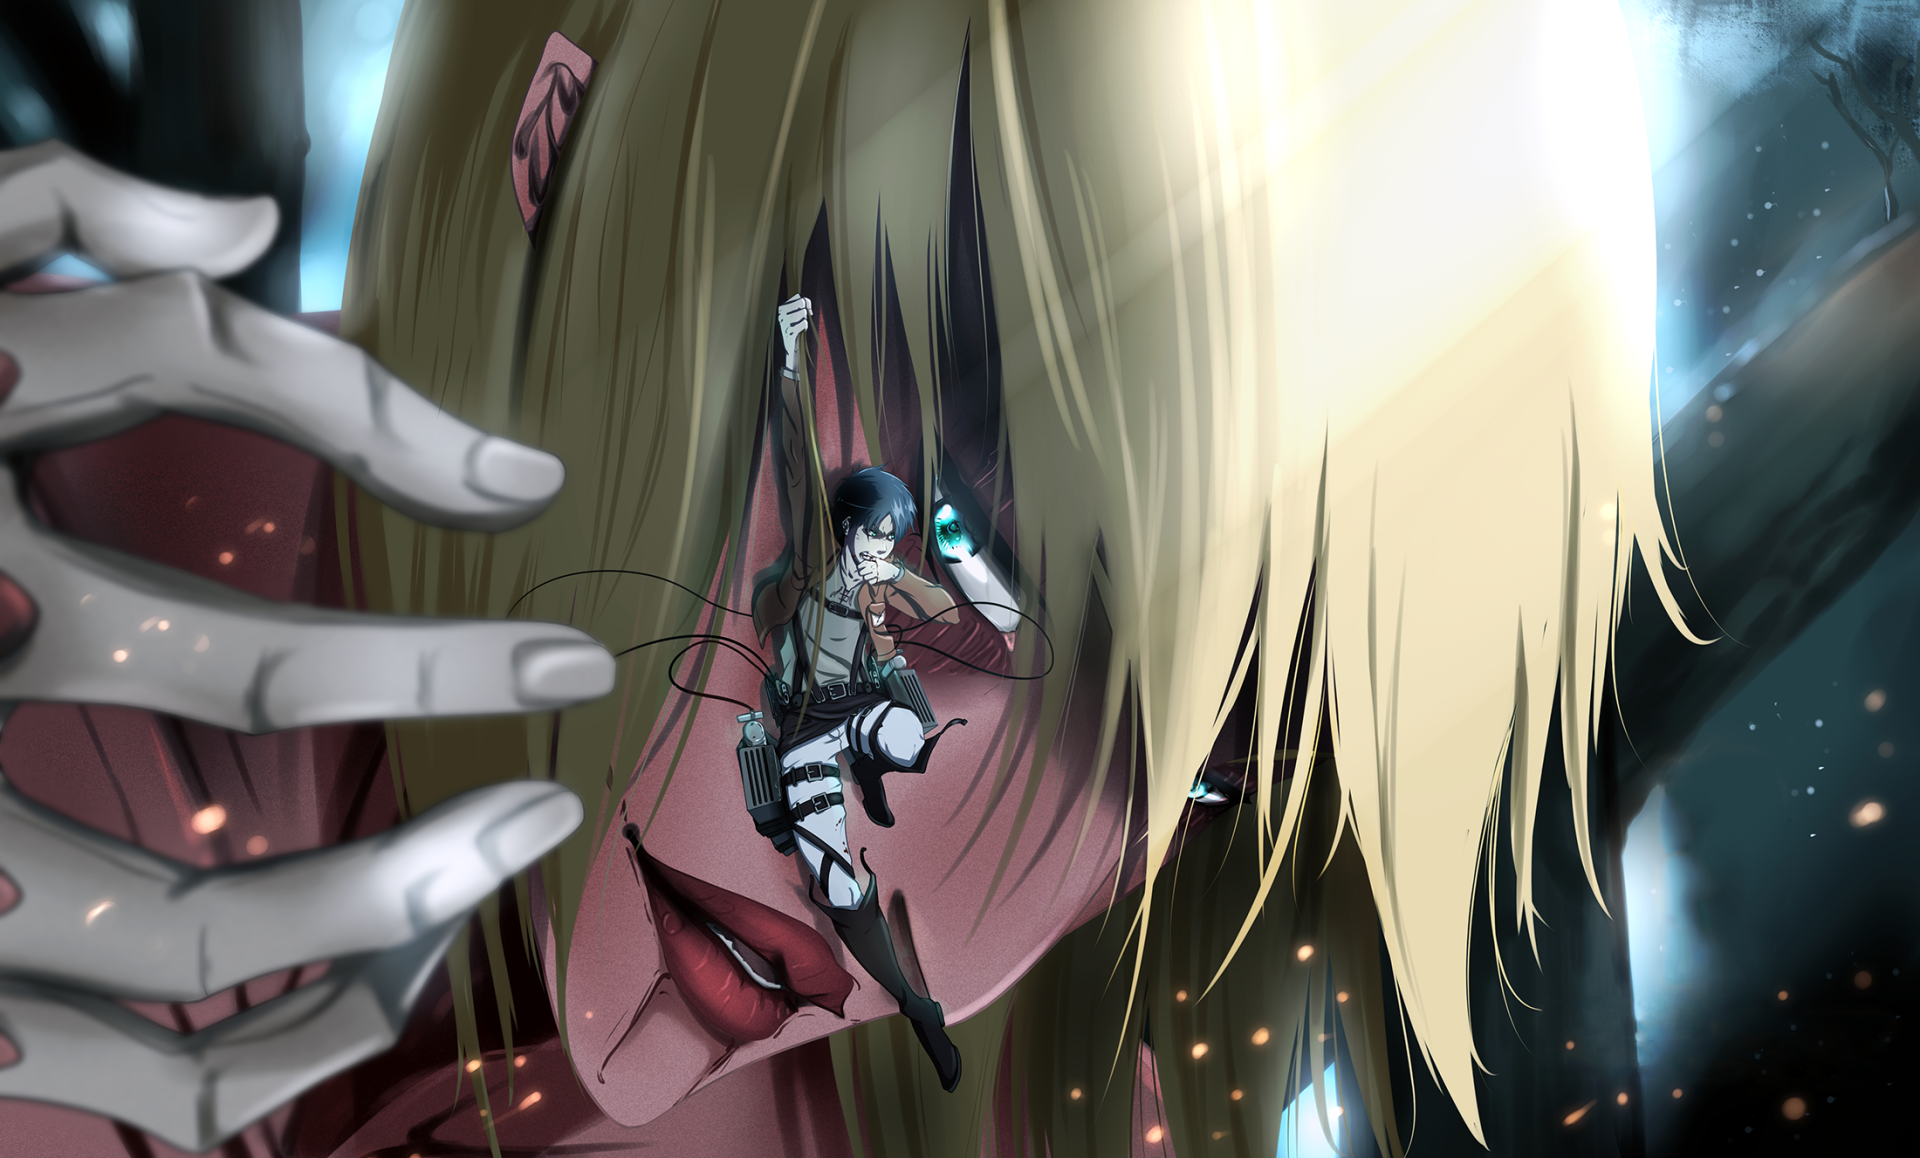 Anime Attack On Titan Annie Leonhart Eren Yeager Wallpaper Attack